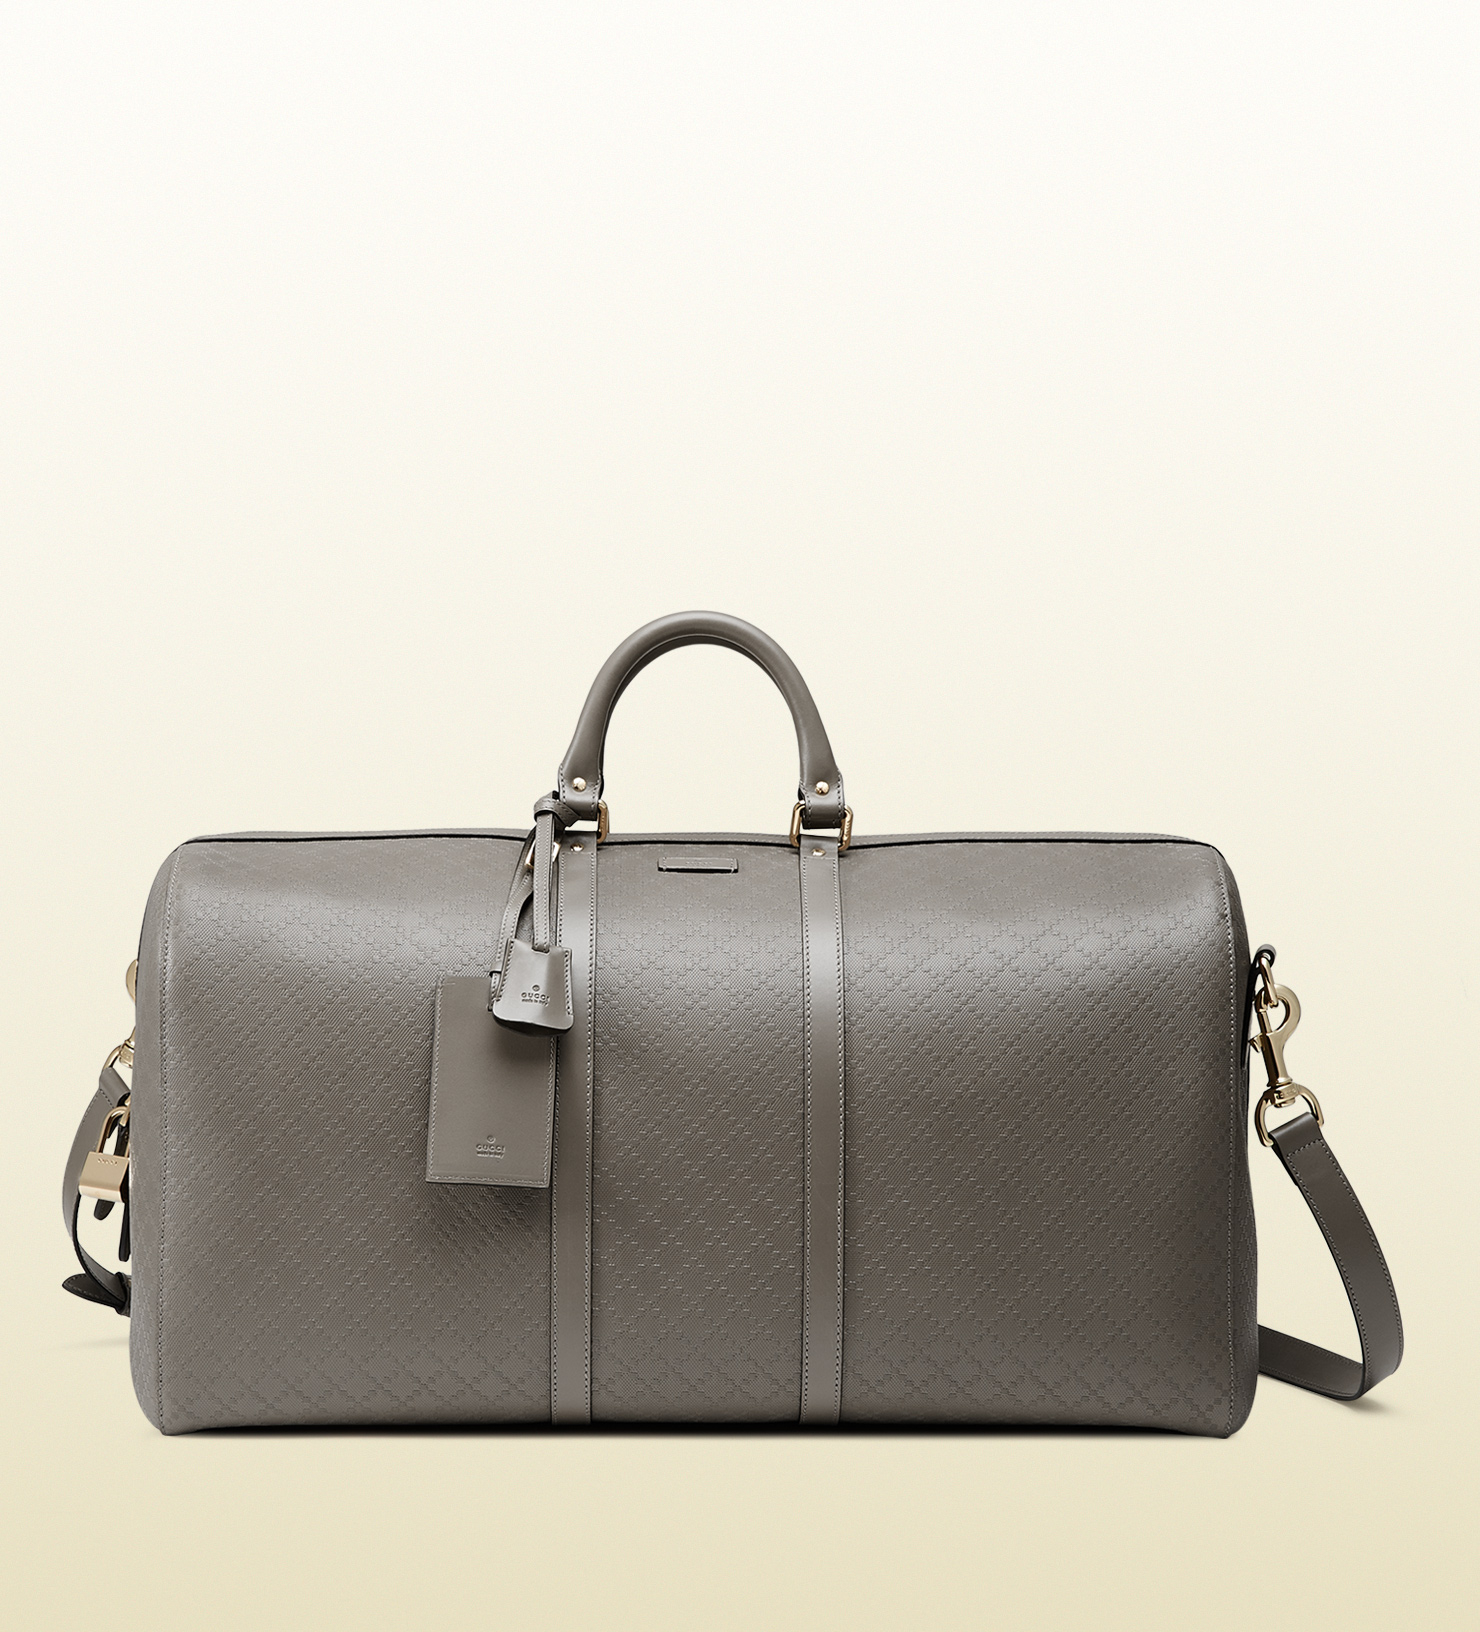 c0e19e4d63a138 Gucci Bright Diamante Leather Carry-on Duffle Bag in Gray for Men - Lyst